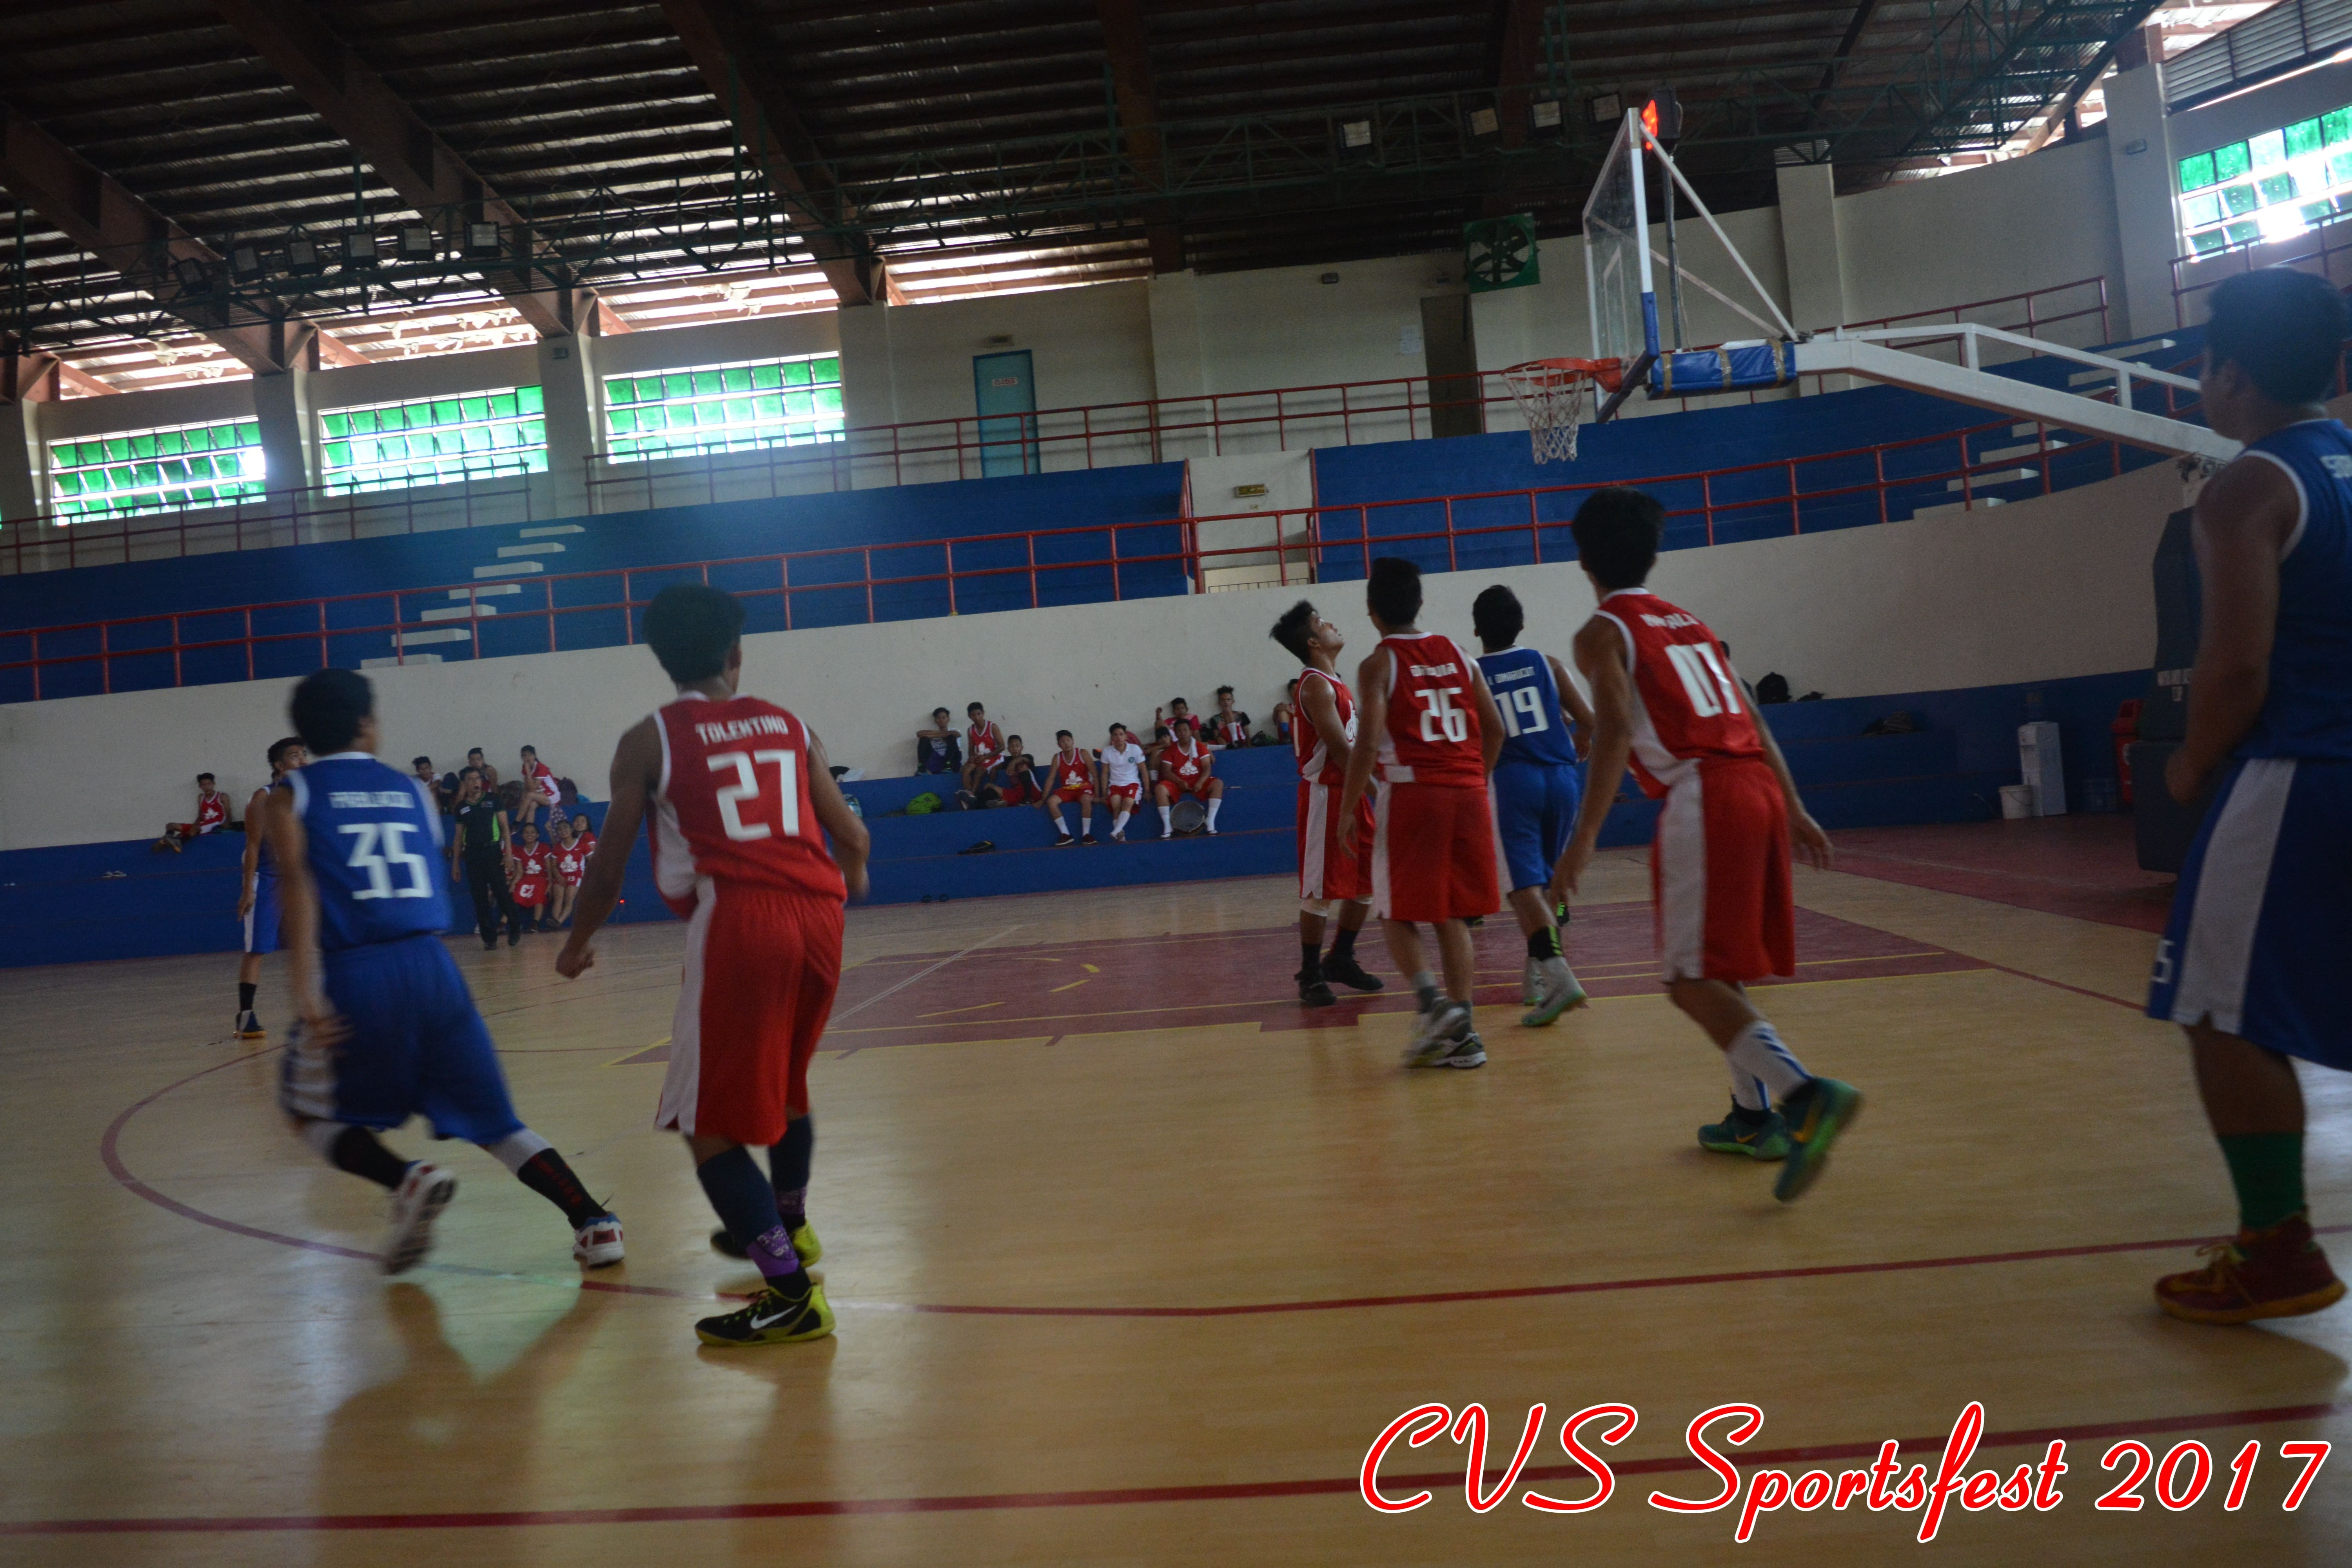 TESDA-CVS SPORTSFEST 2017 Adventure and Fun in the Spirit of Love and Friendship